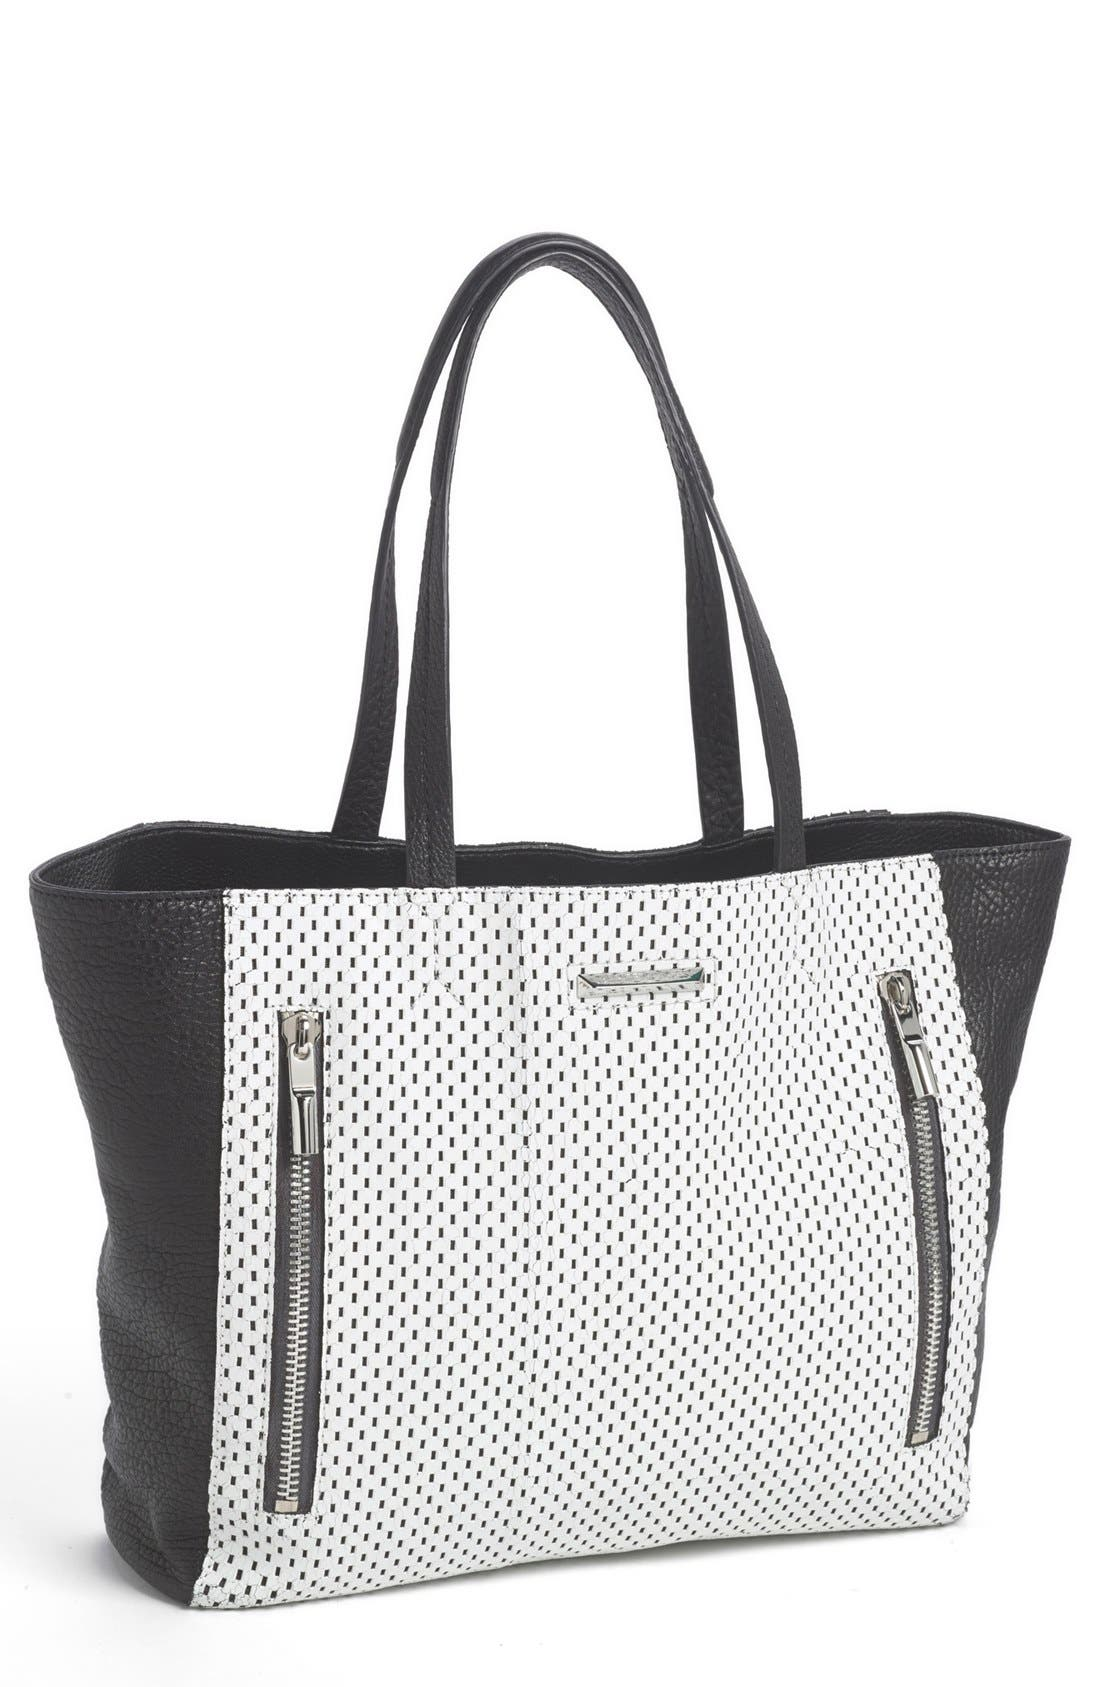 Alternate Image 1 Selected - Elizabeth and James 'Cynnie' Tote